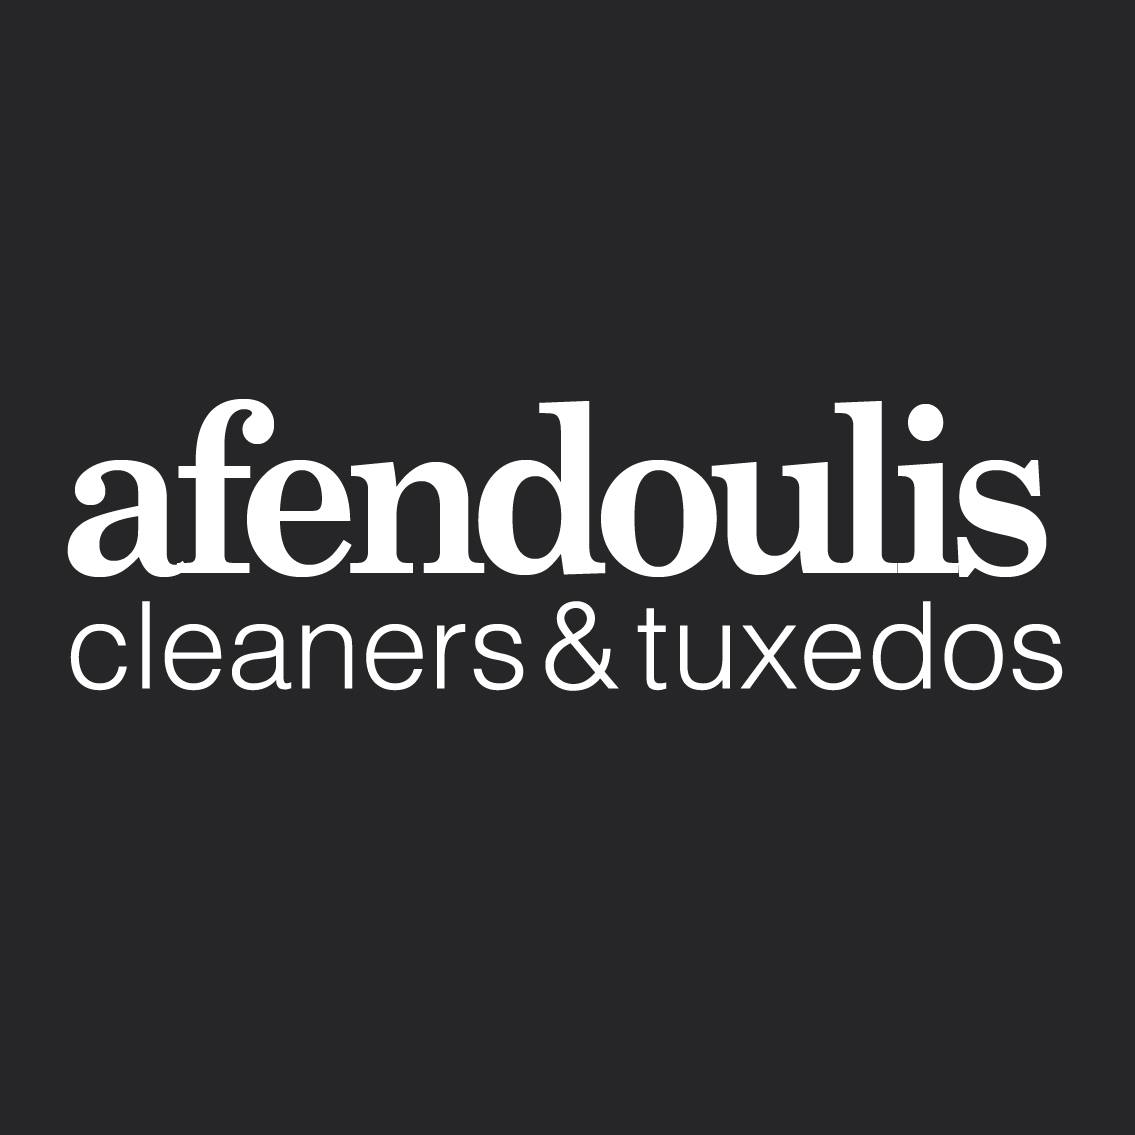 Affendoulis Cleaners